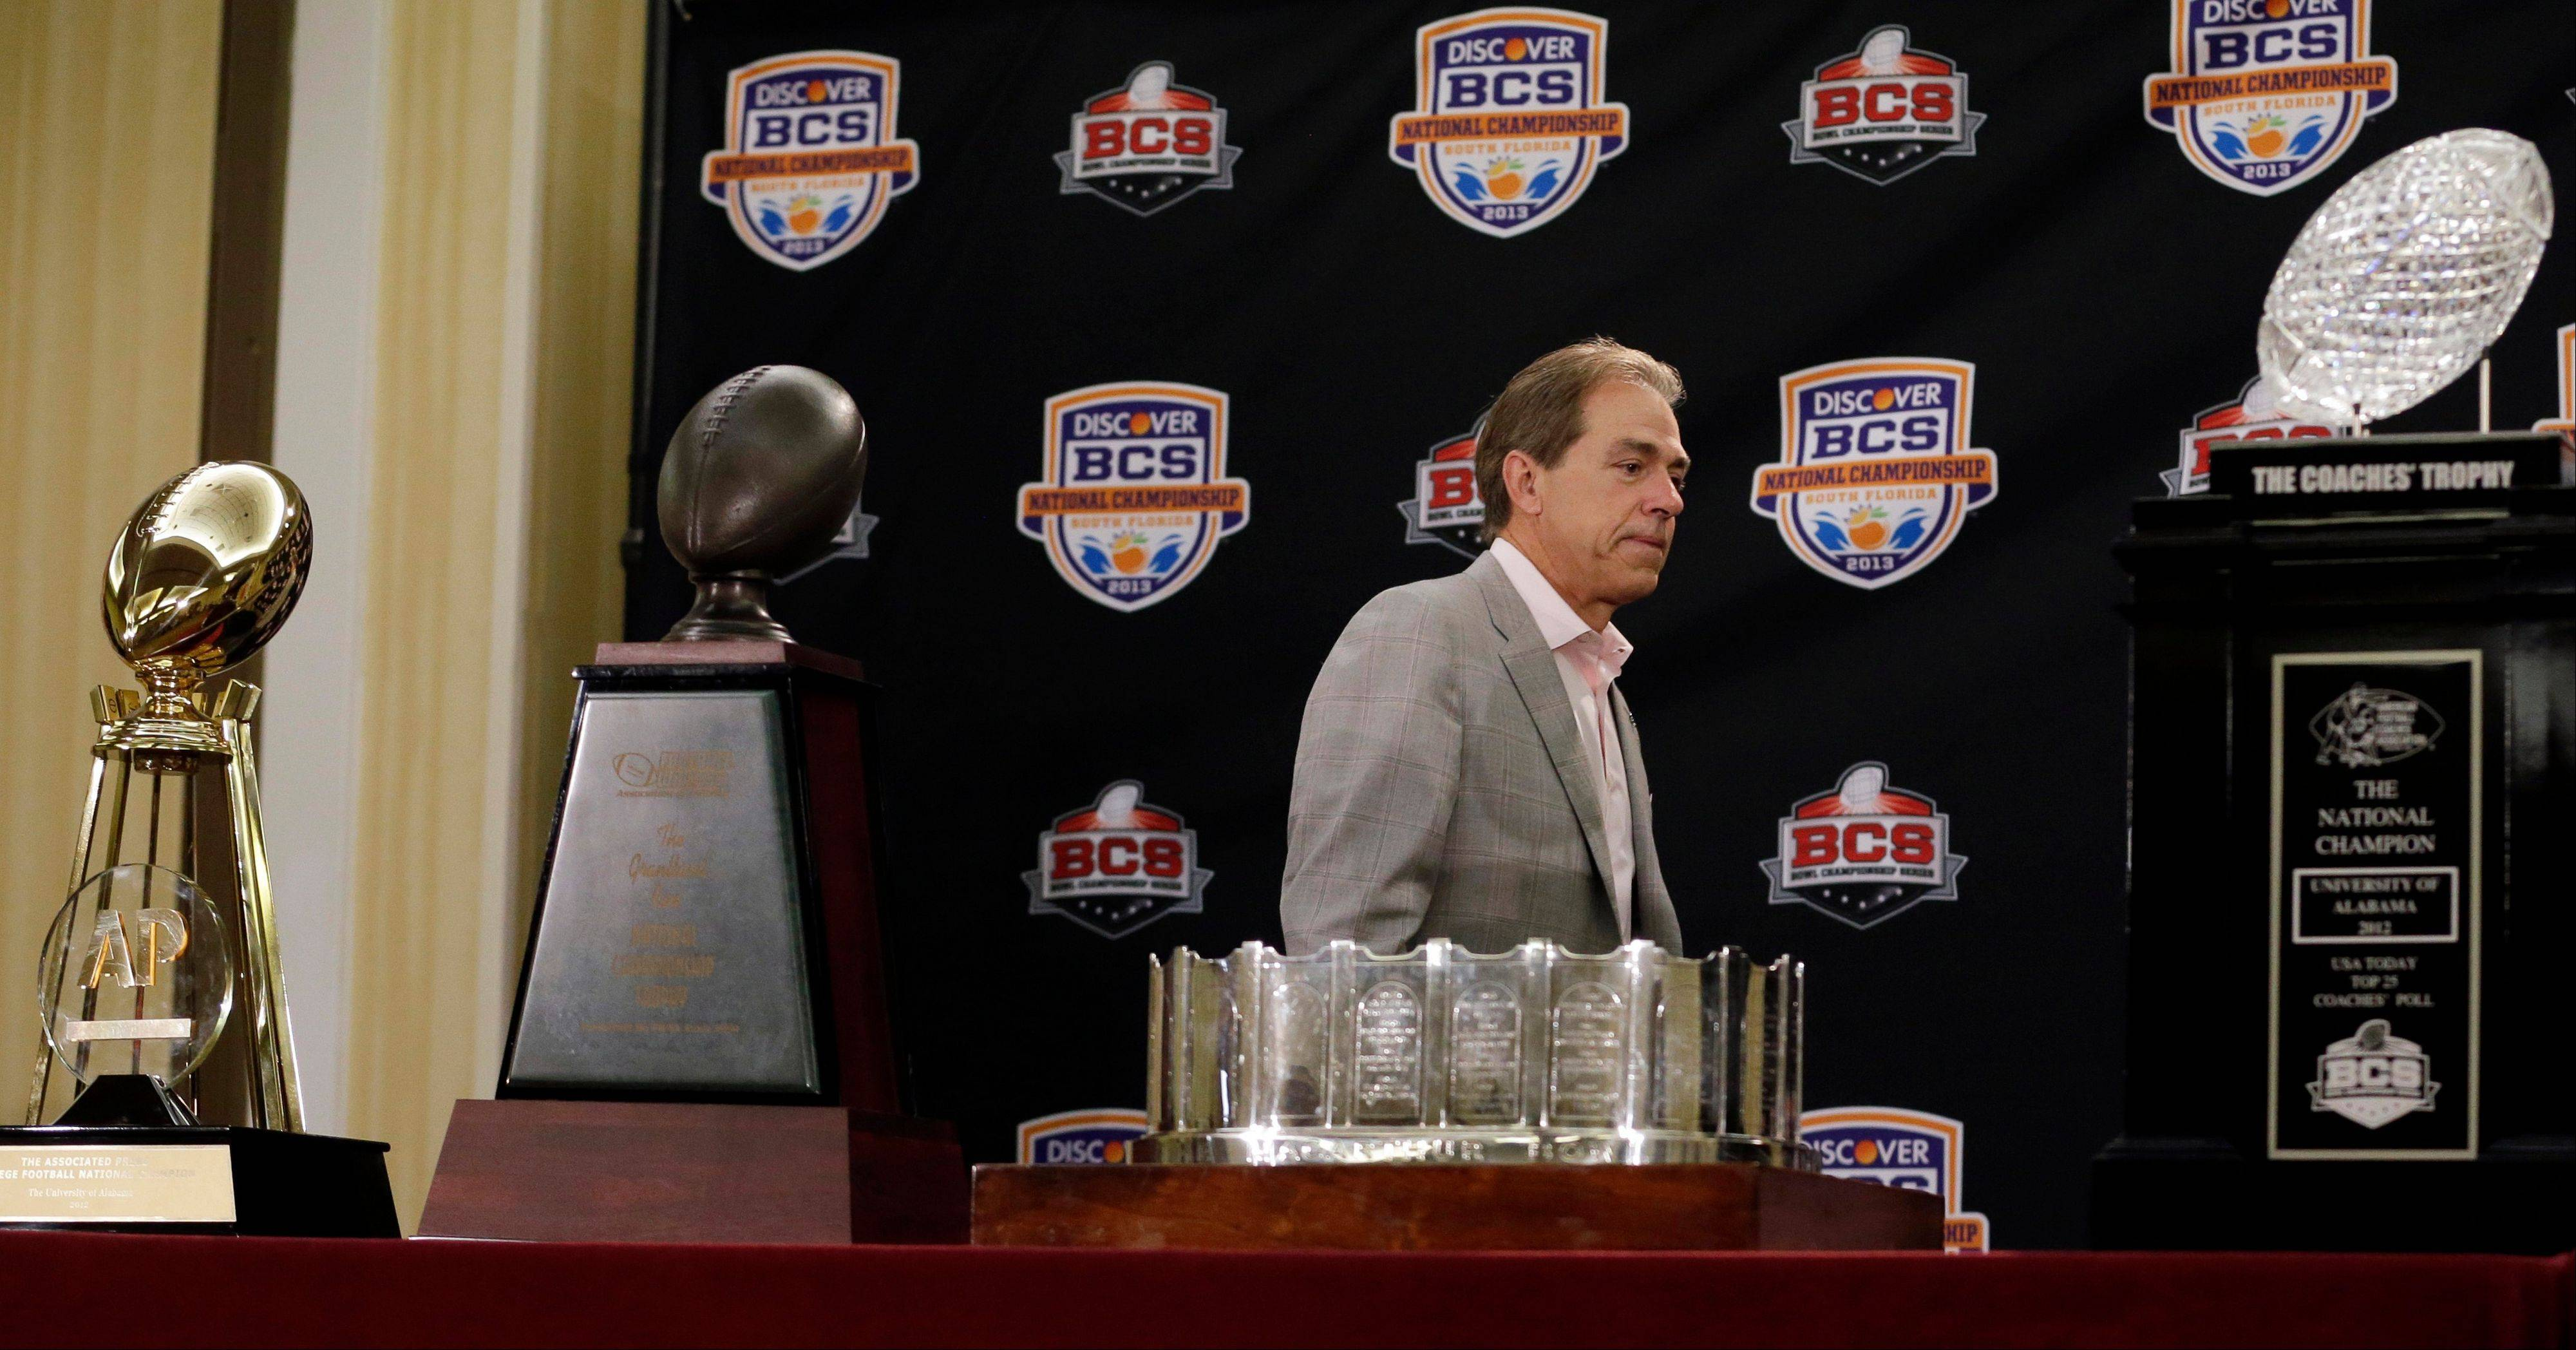 In this Jan. 8, 2013, file photo, Alabama head coach Nick Saban walks past national championship trophies at a BCS National Championship college football news conference in Ft. Lauderdale, Fla. Alabama will begin this season the way it ended the last two ó No. 1. Nick Saban and the two-time defending national champion Crimson Tide are top-ranked in The Associated Press preseason college football poll released Saturday as they try to become the first team to win three straight national titles.